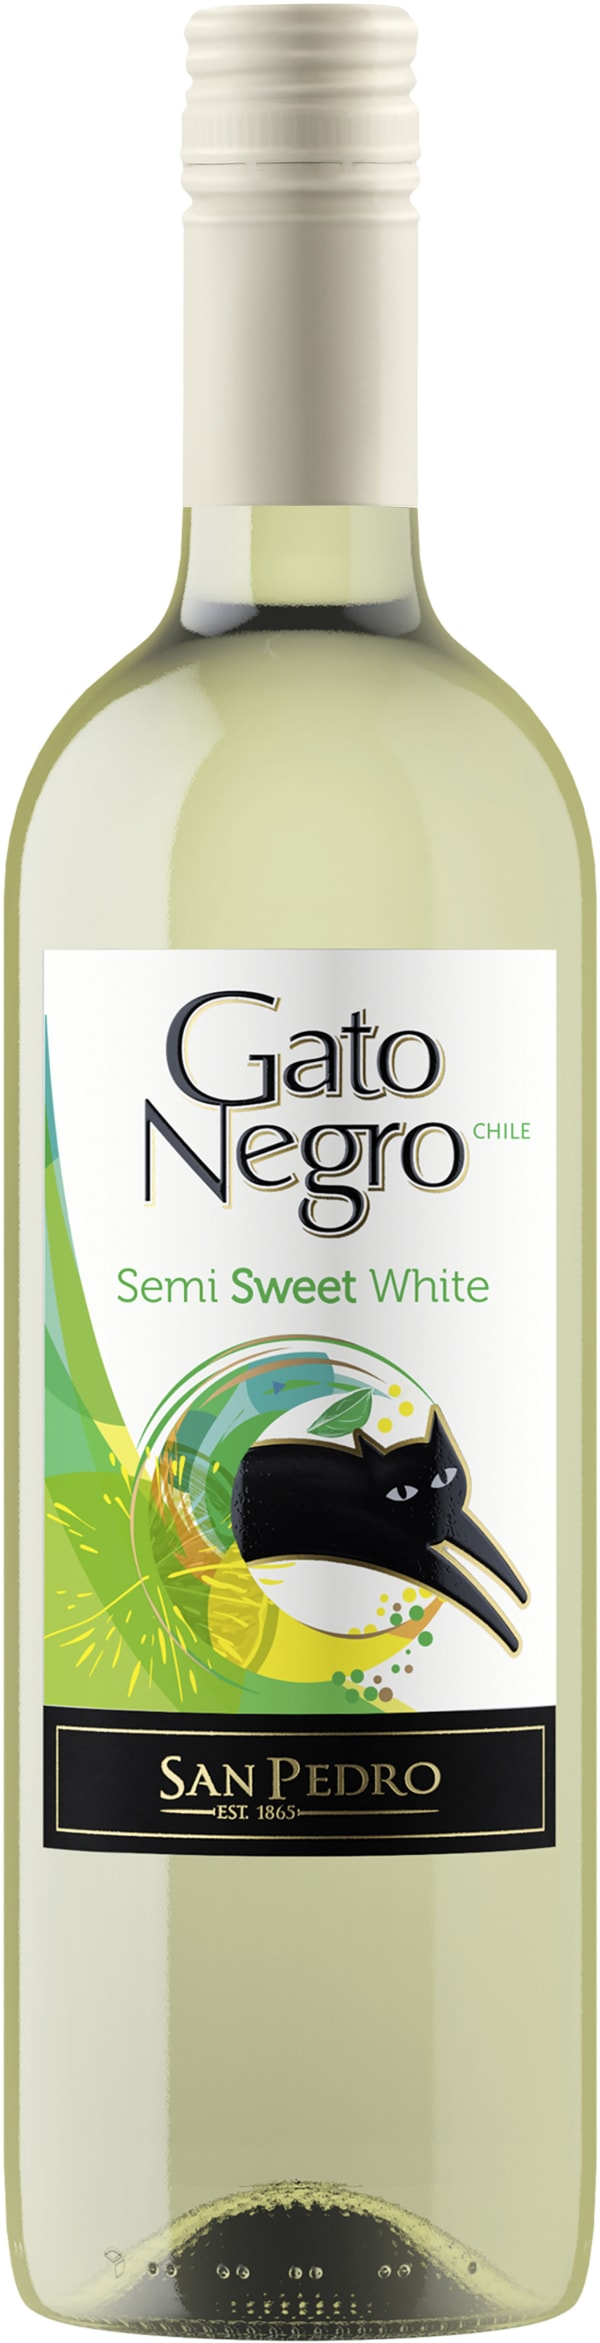 Gato Negro Semi Sweet White 2016